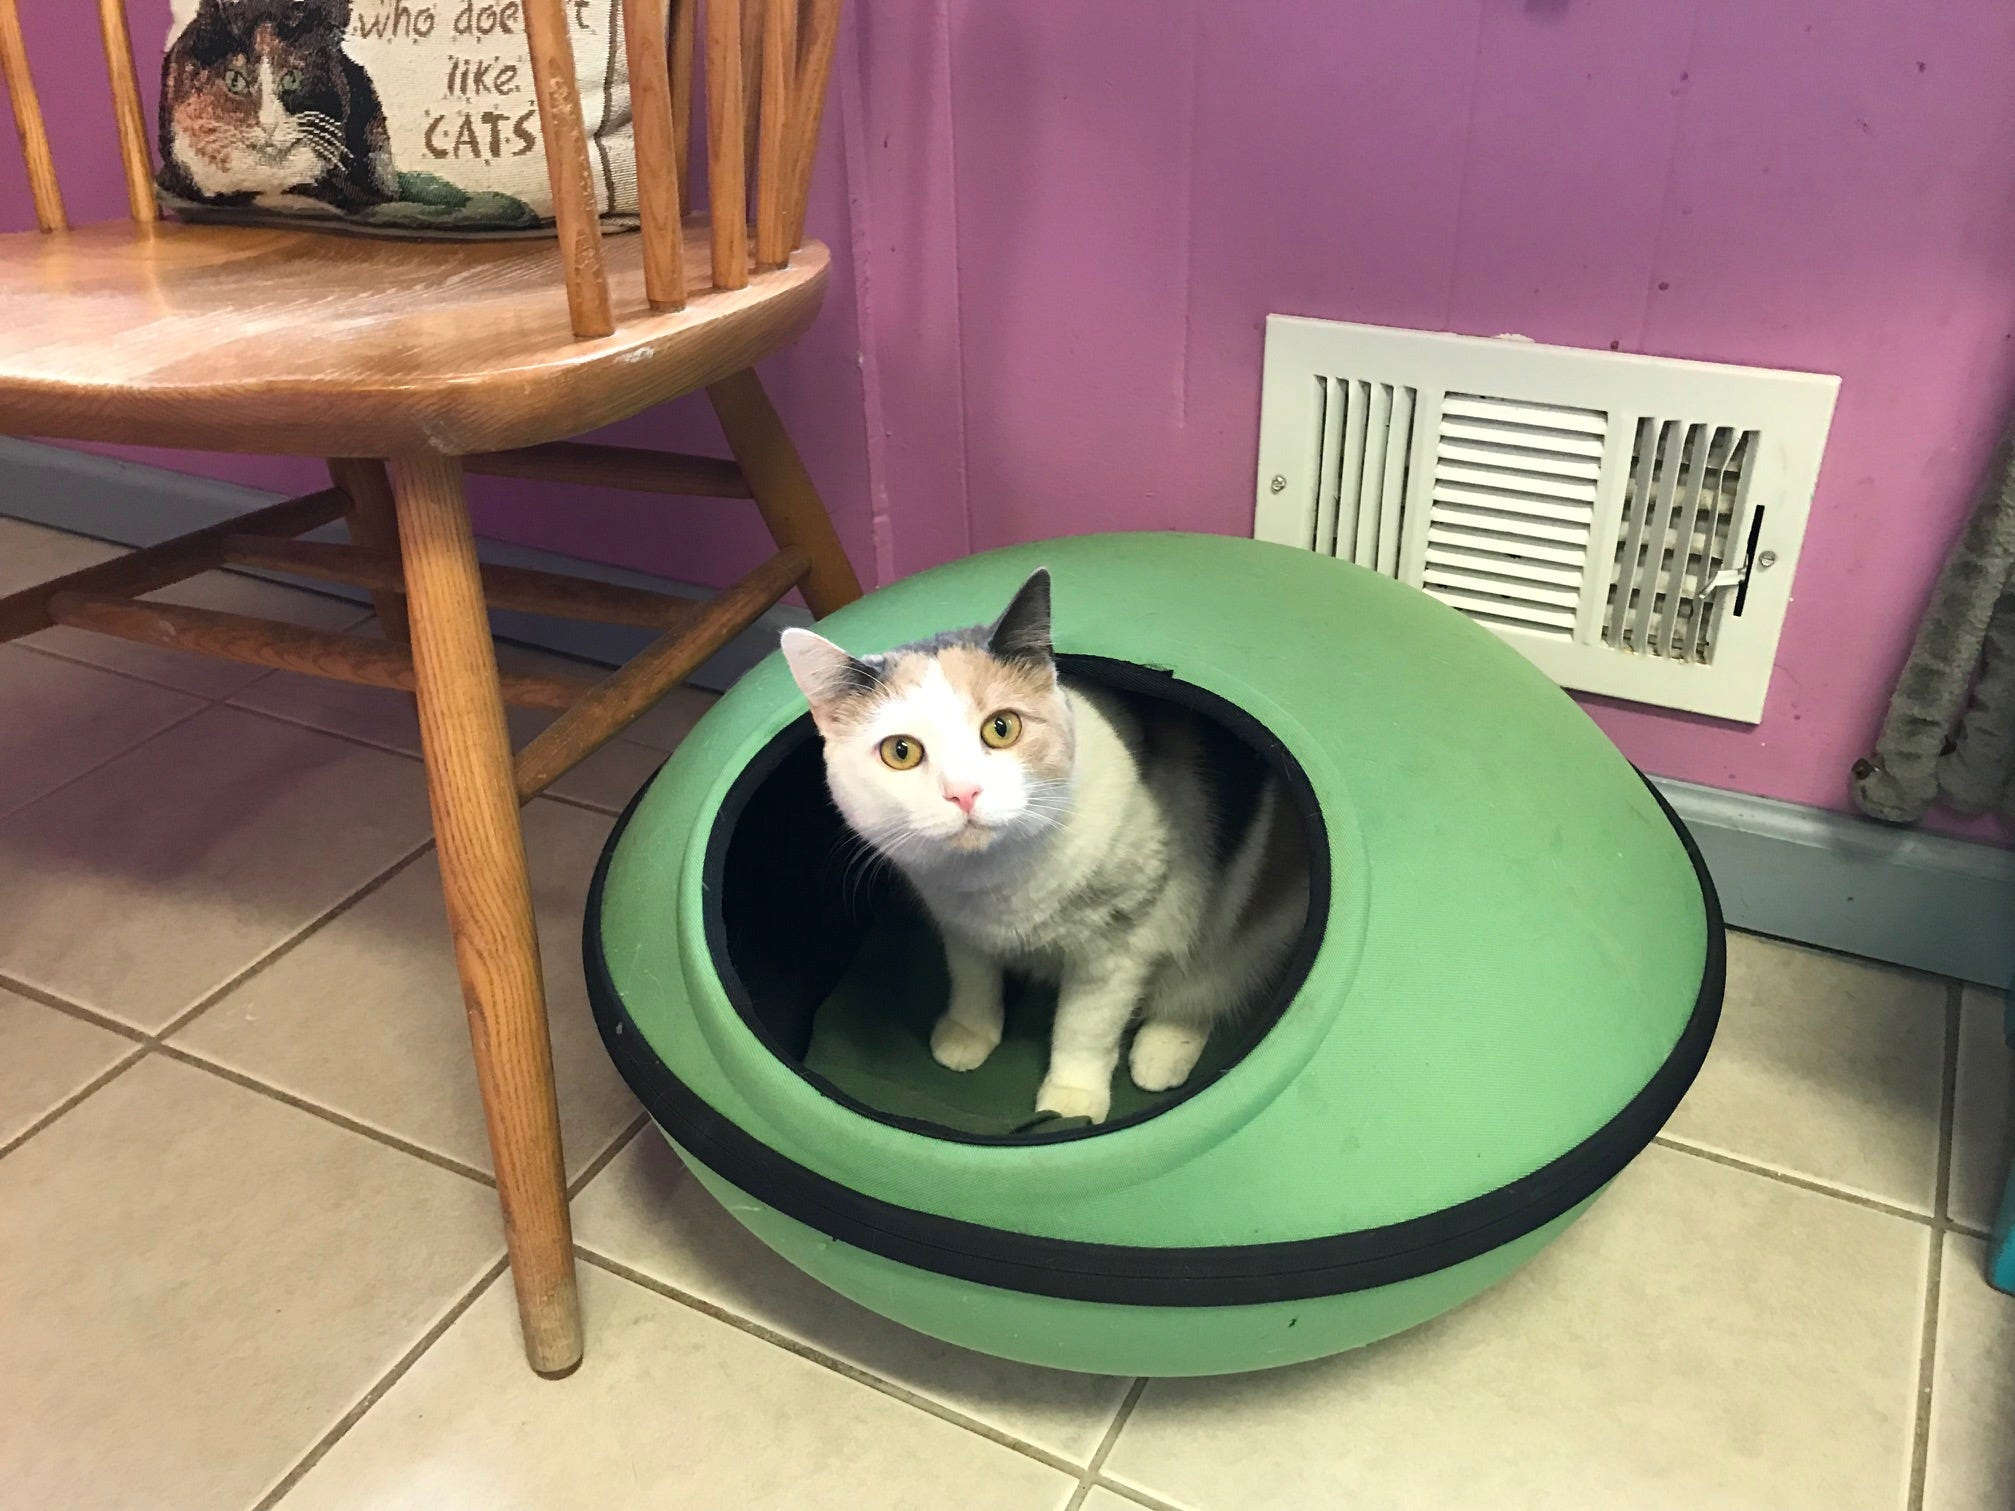 Lizzie, a 9-month-old dilute calico, is among the cats and dogs up for adoption at New Beginnings Animal Rescue in East Brunswick, which is closing its doors.